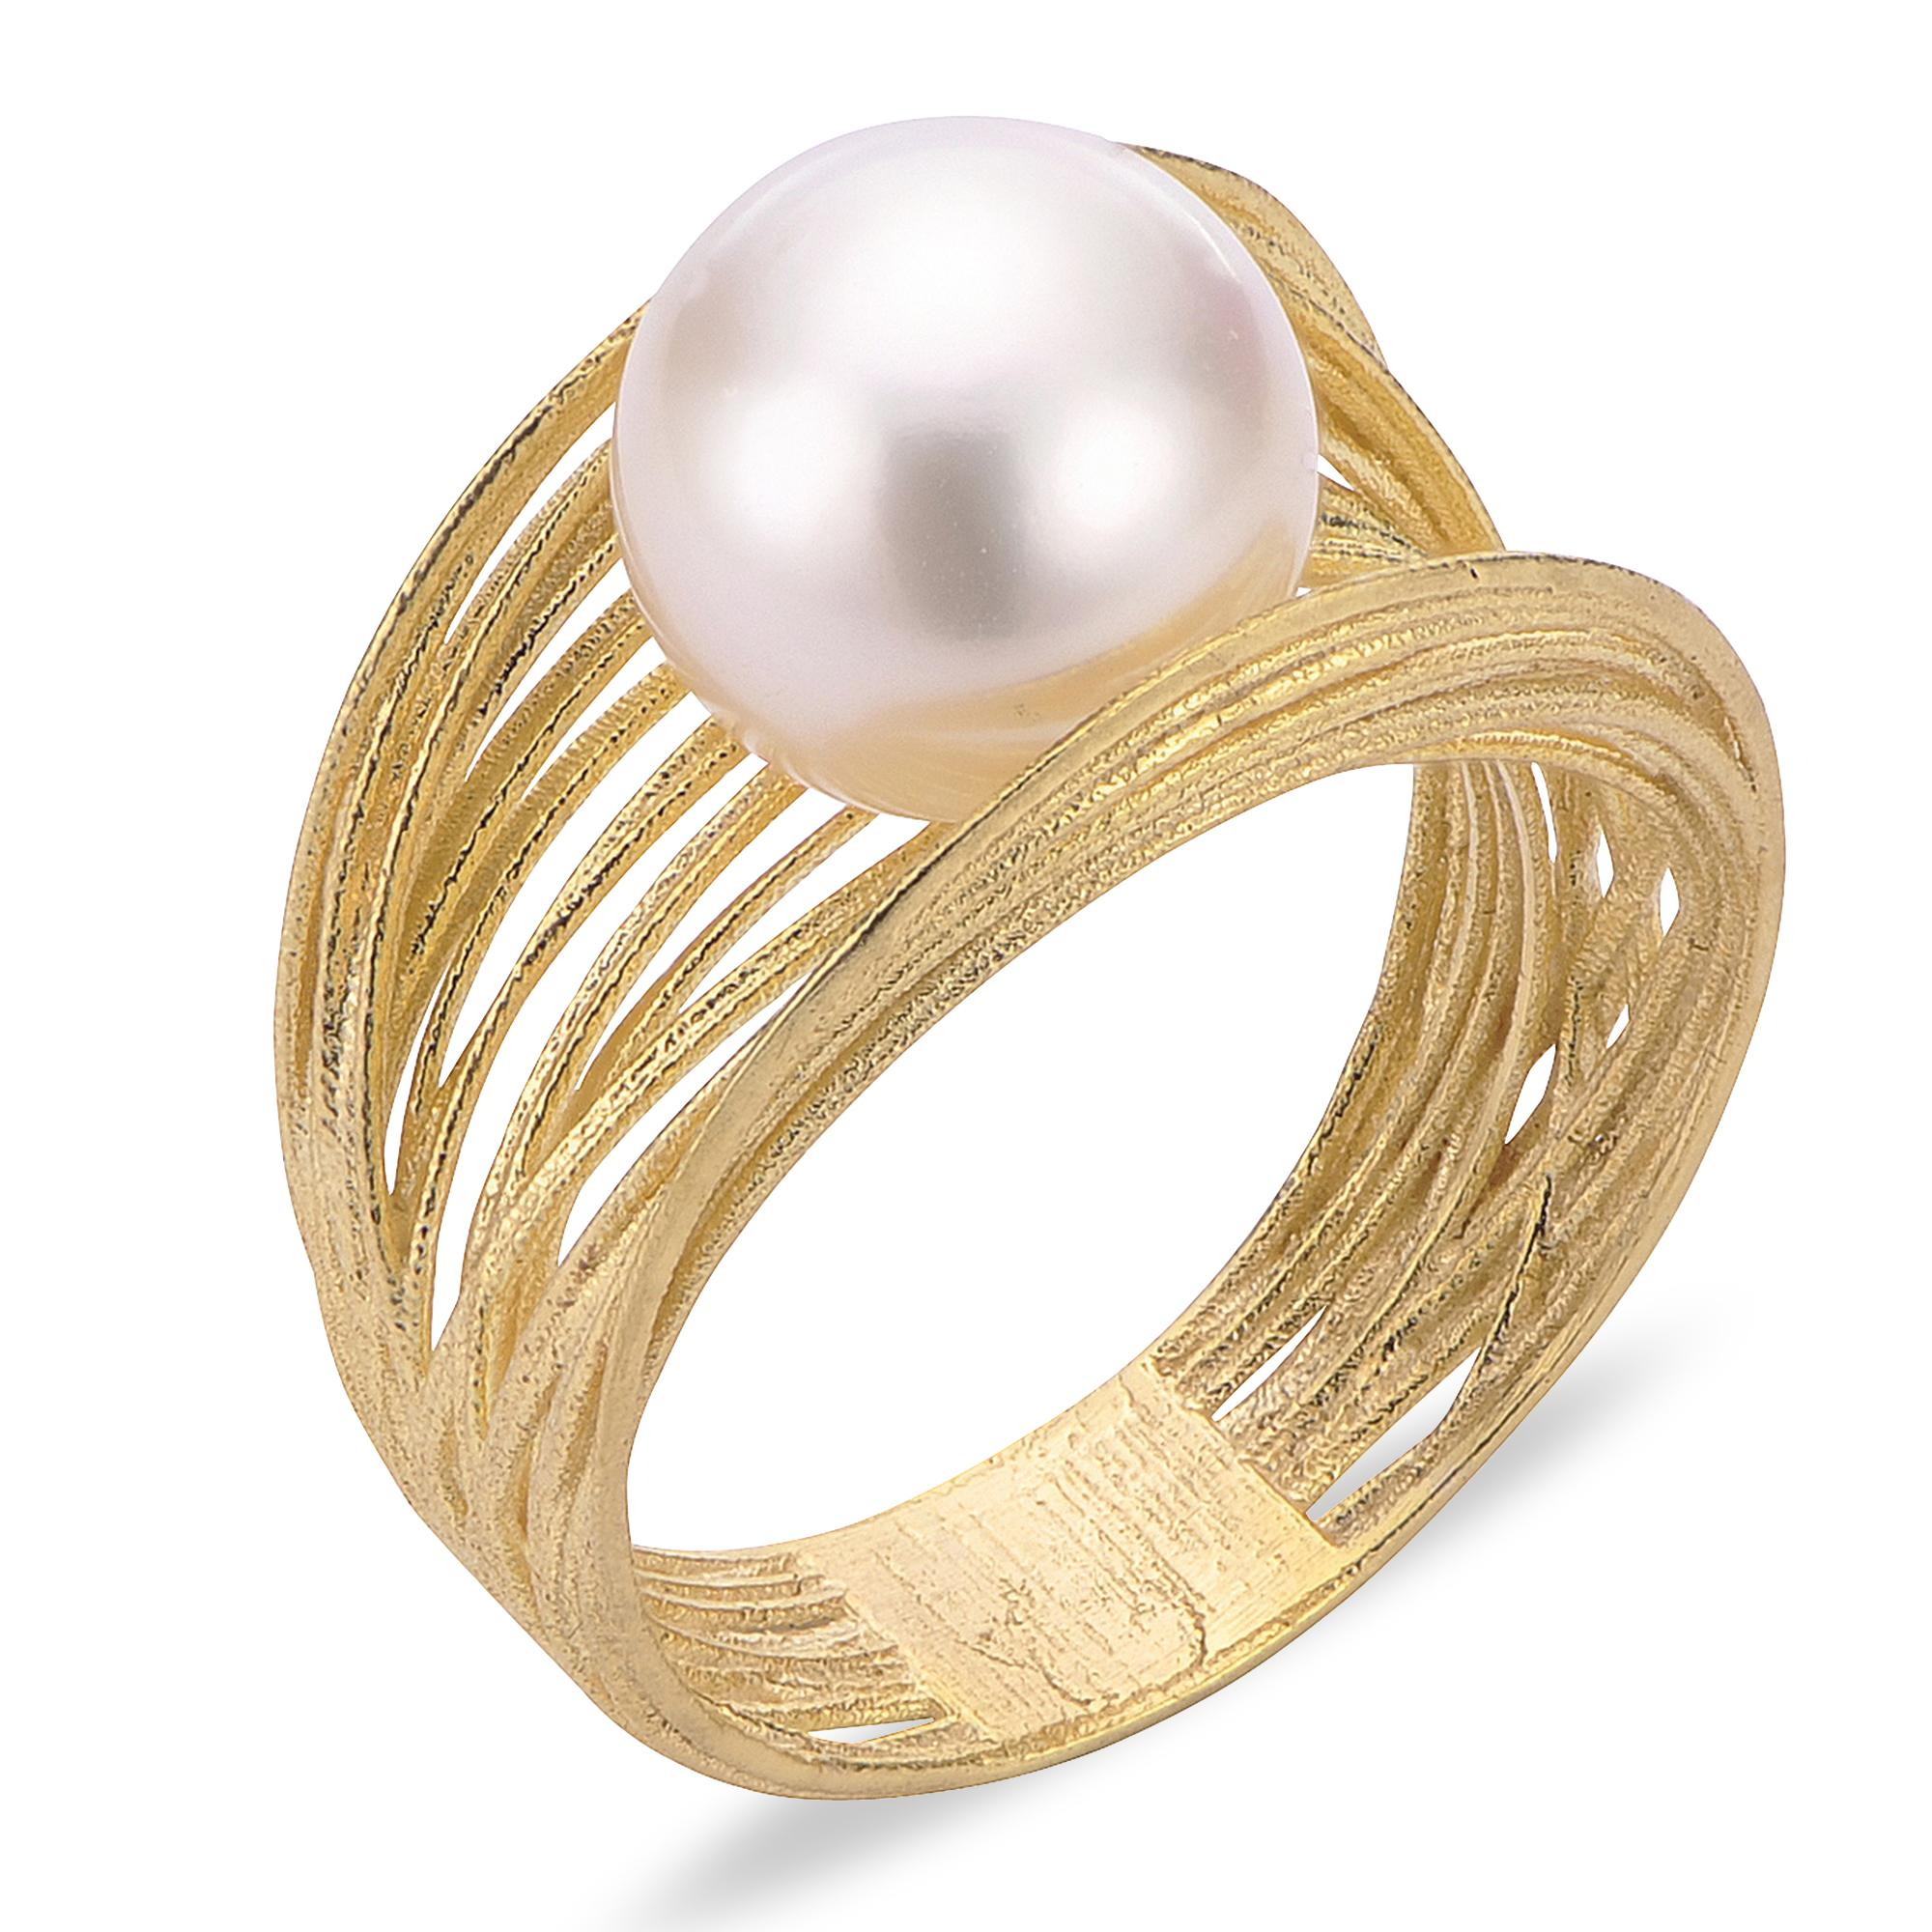 fa62ea434 14K Yellow Gold Freshwater Pearl Ring 918820/AAFW | Rings from Alan ...